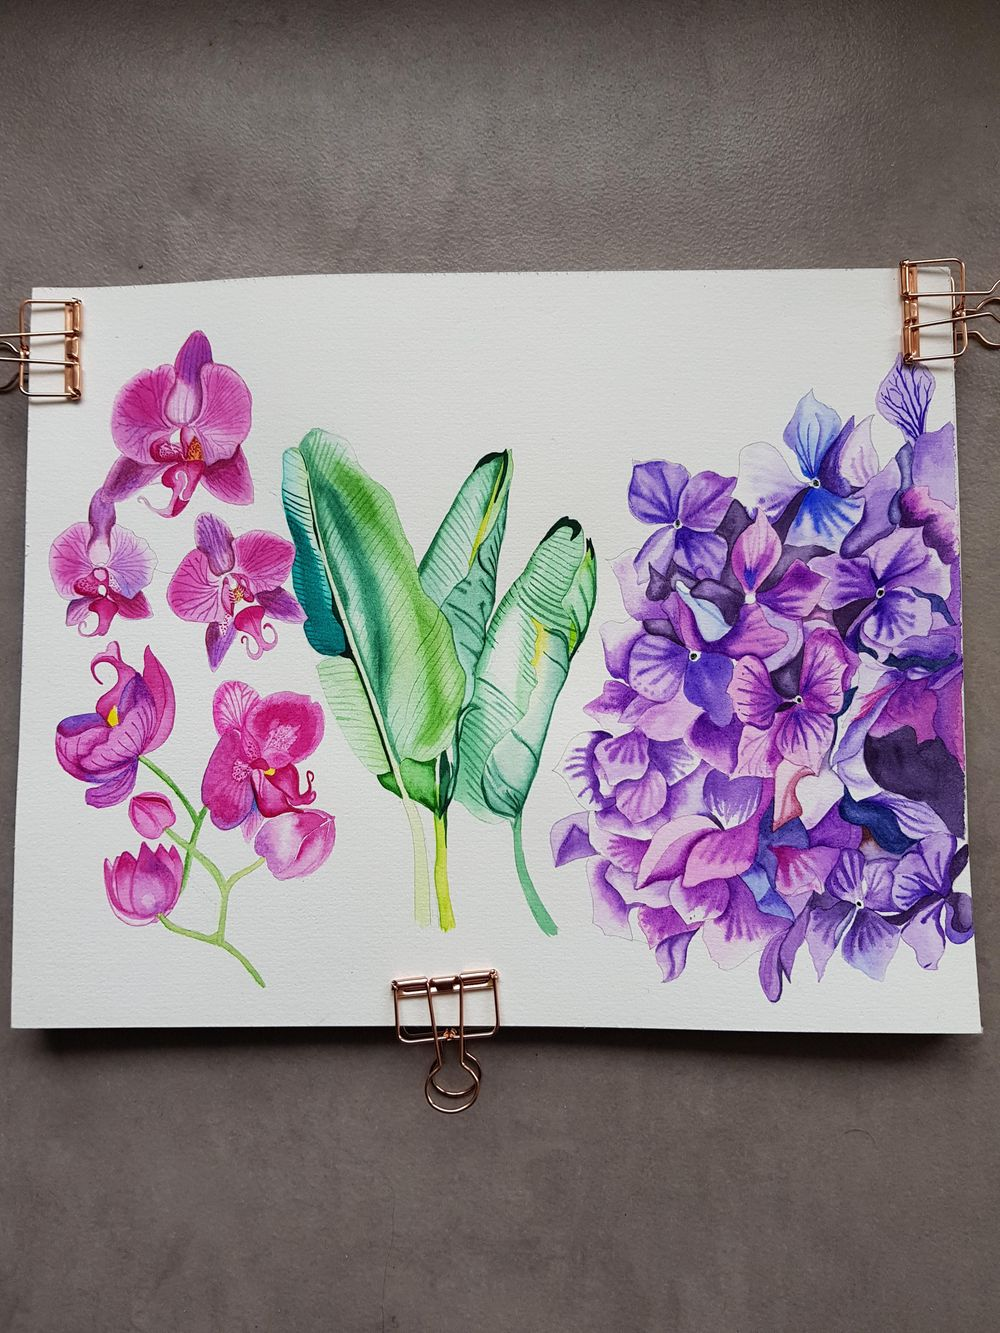 Orchids watercolours - image 1 - student project